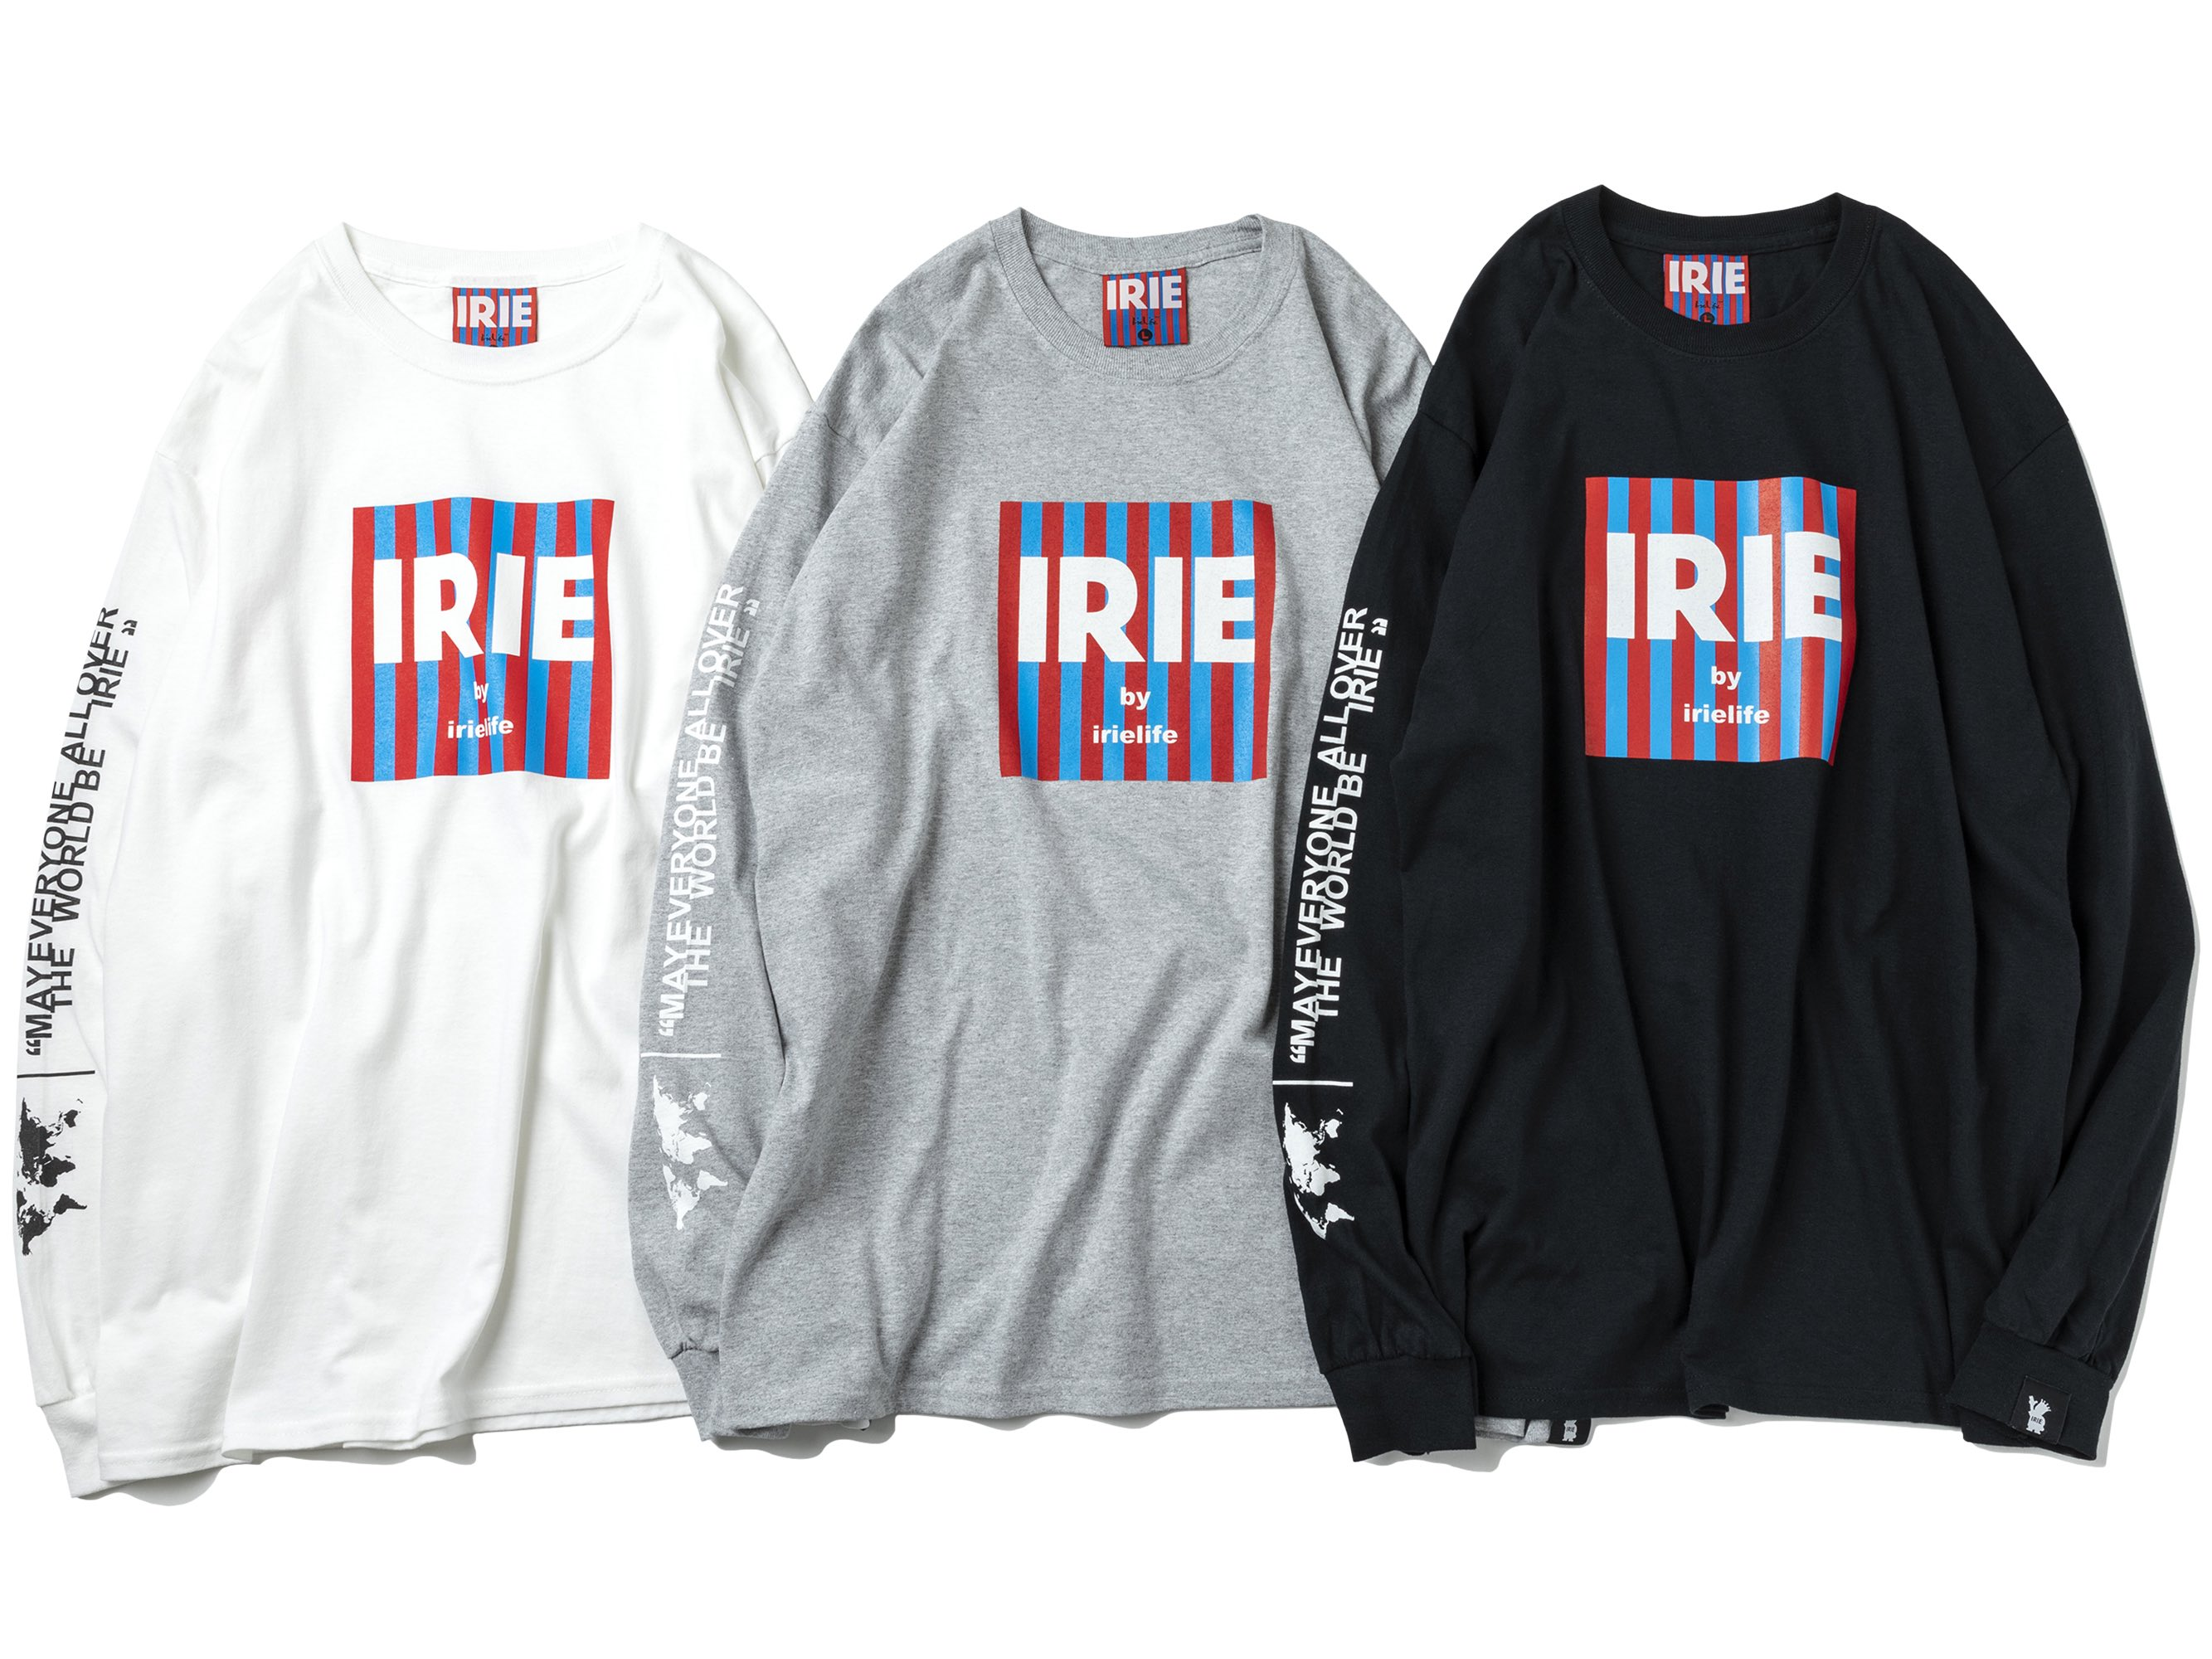 WORLD BE IRIE L/S TEE (Raggachina LIMITED) - IRIE by irielife